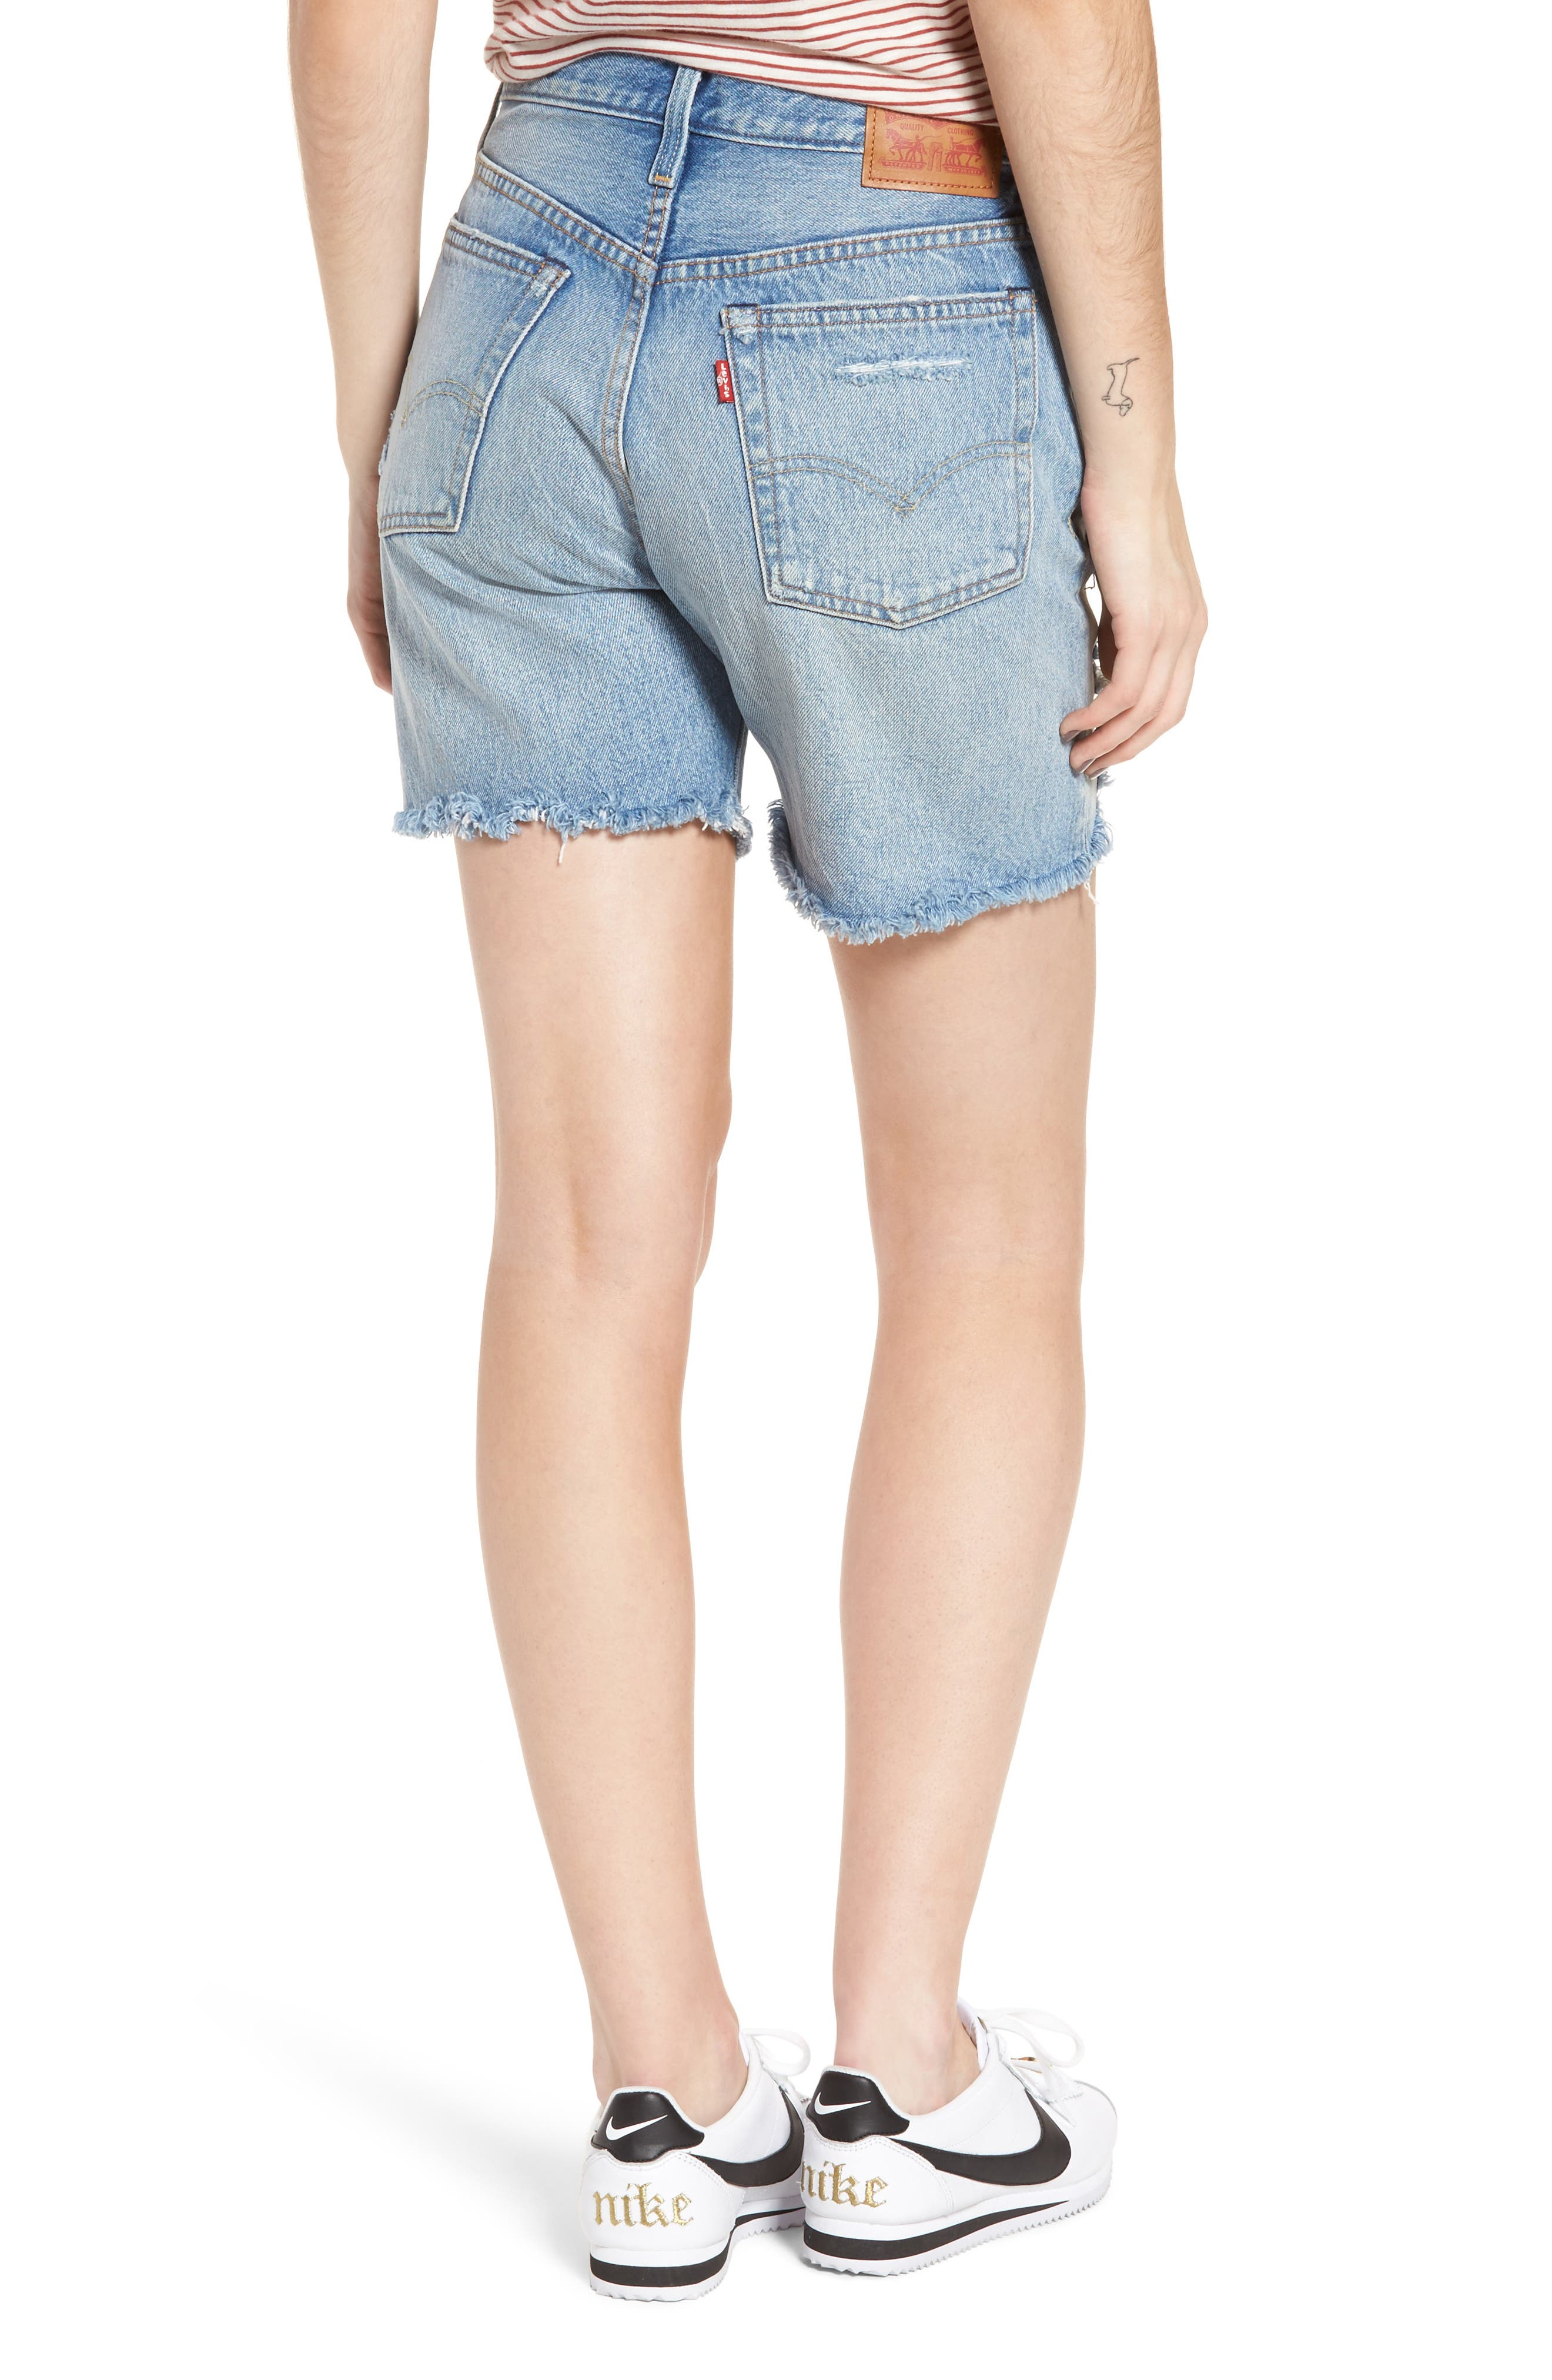 Indie Shredded Cutoff Denim Shorts,                             Alternate thumbnail 2, color,                             Let It Rip